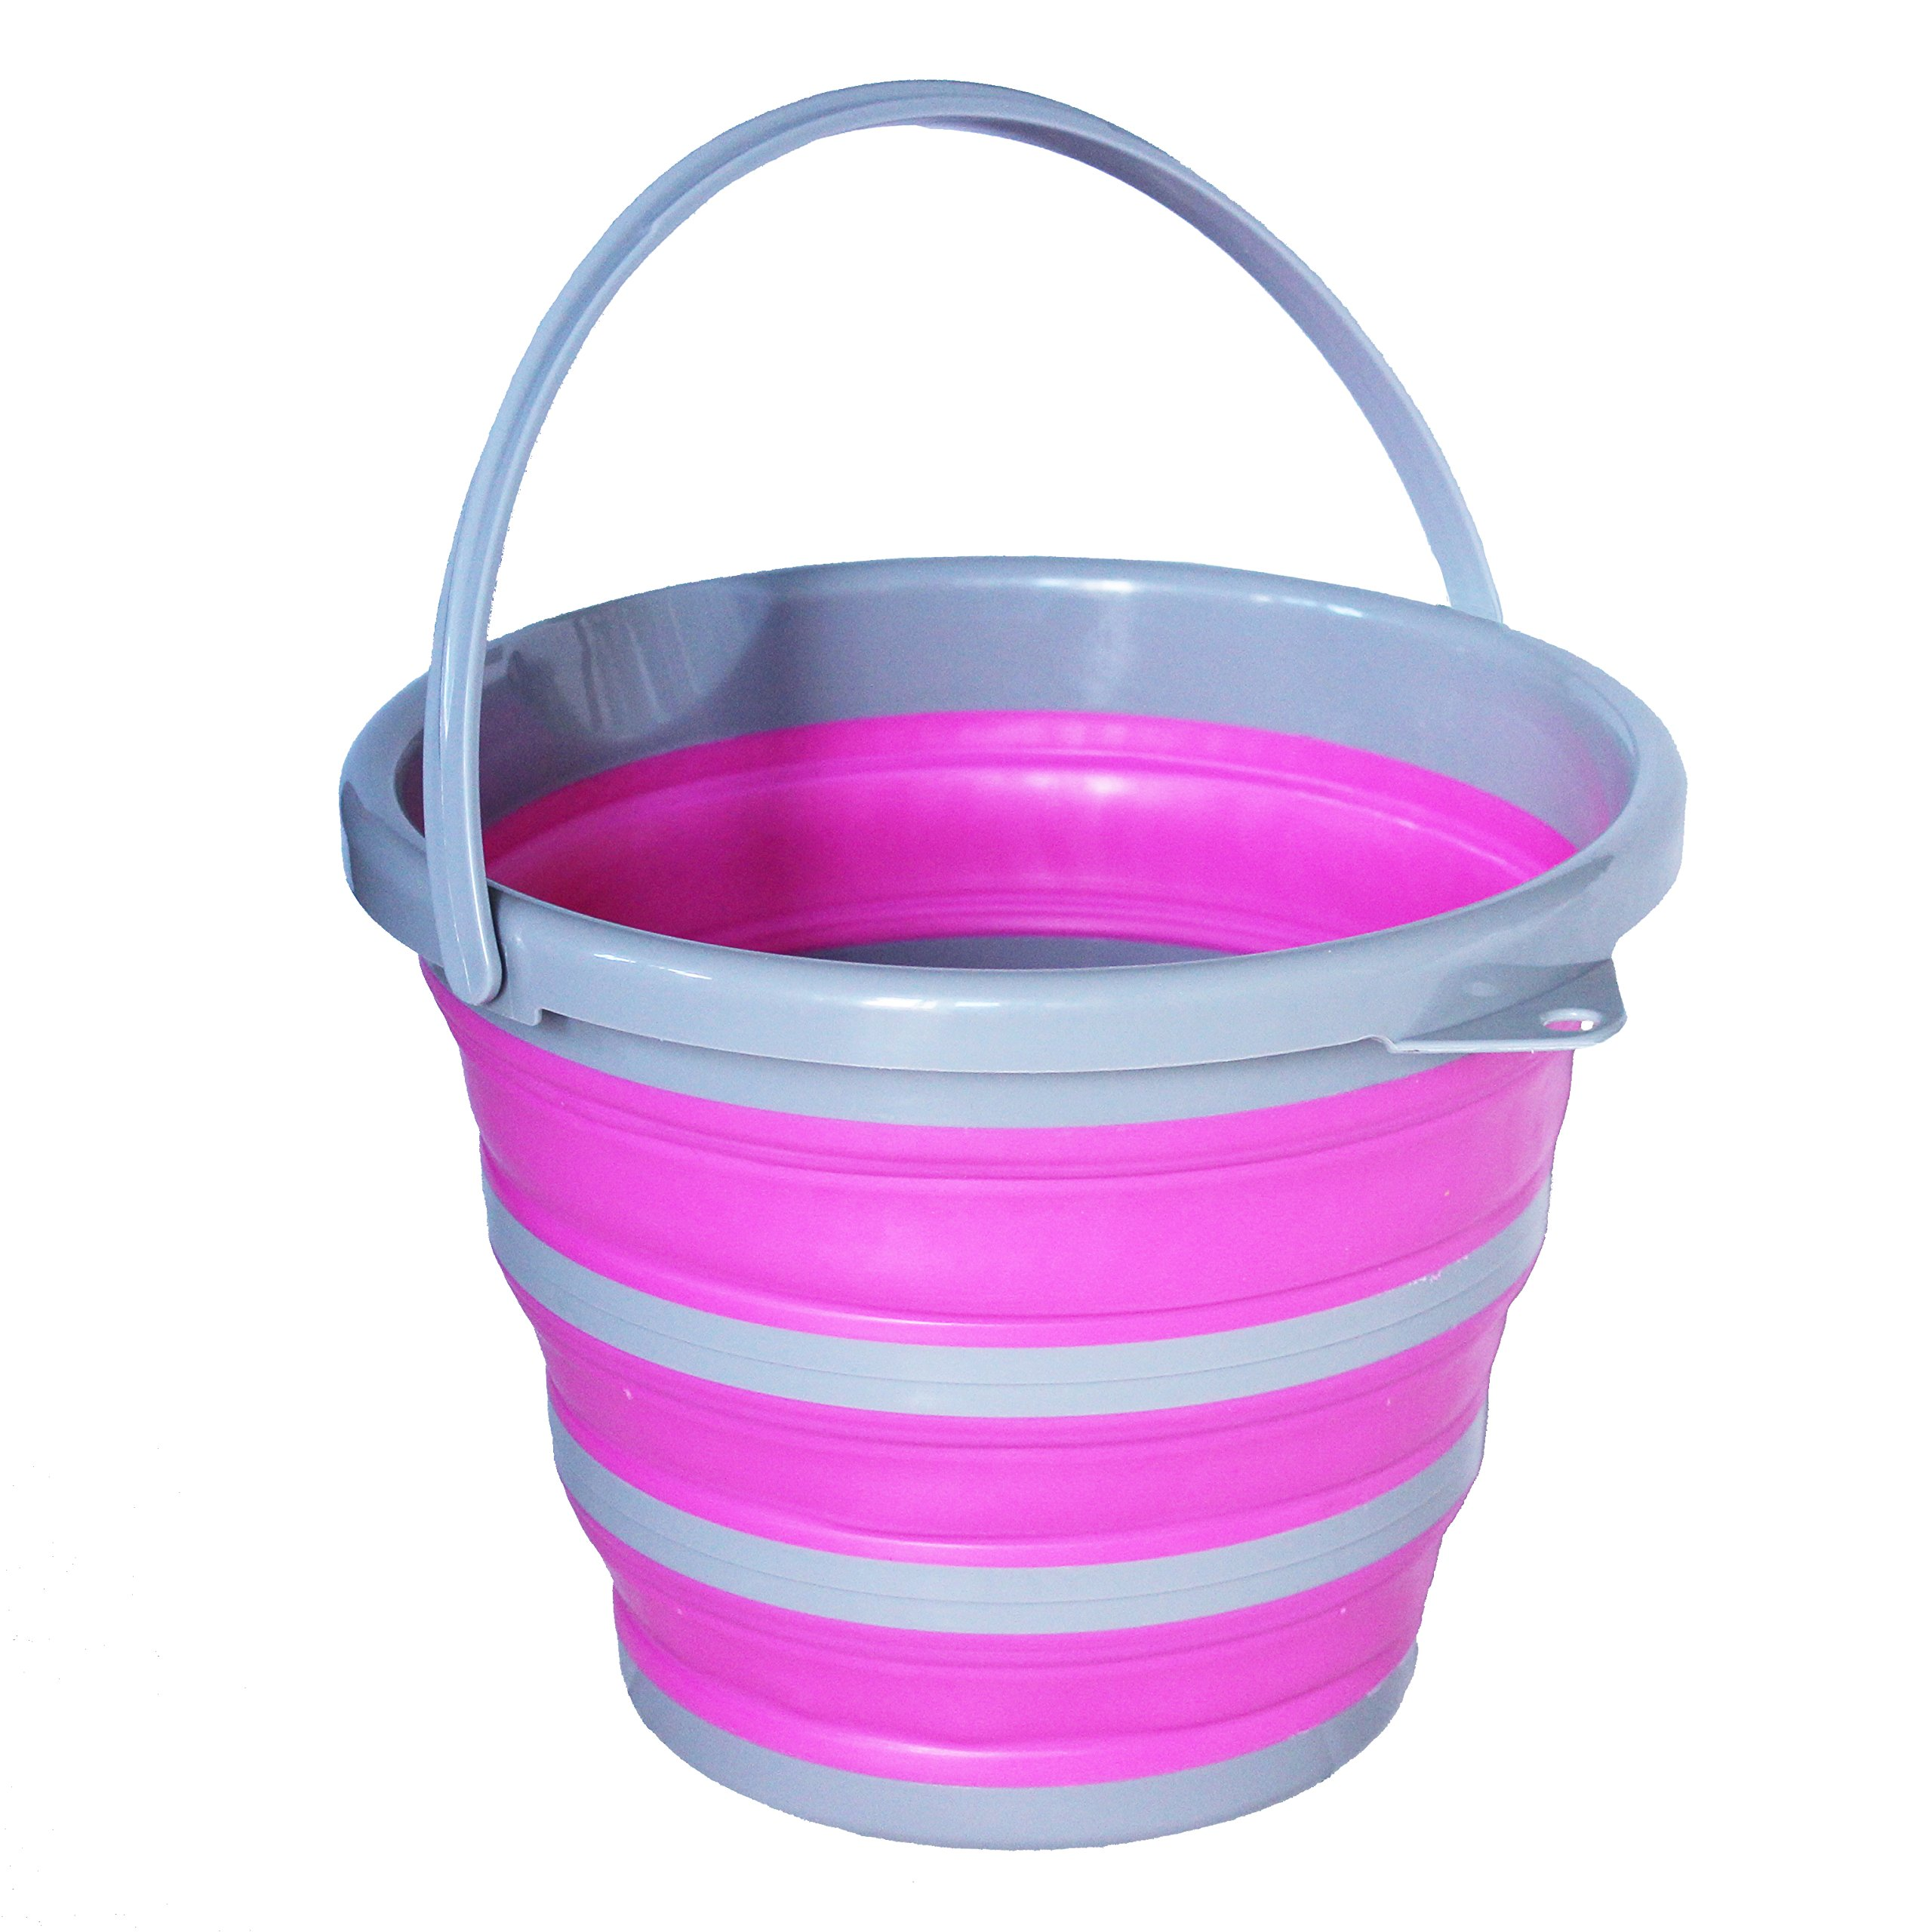 Collapsible Plastic Bucket, 10L with Handle for Fishing,Camping, Car Washing, Plastic Fish Bowl, Mop Bucket,Wash Pail Portable Folding Container Homes (Pink)